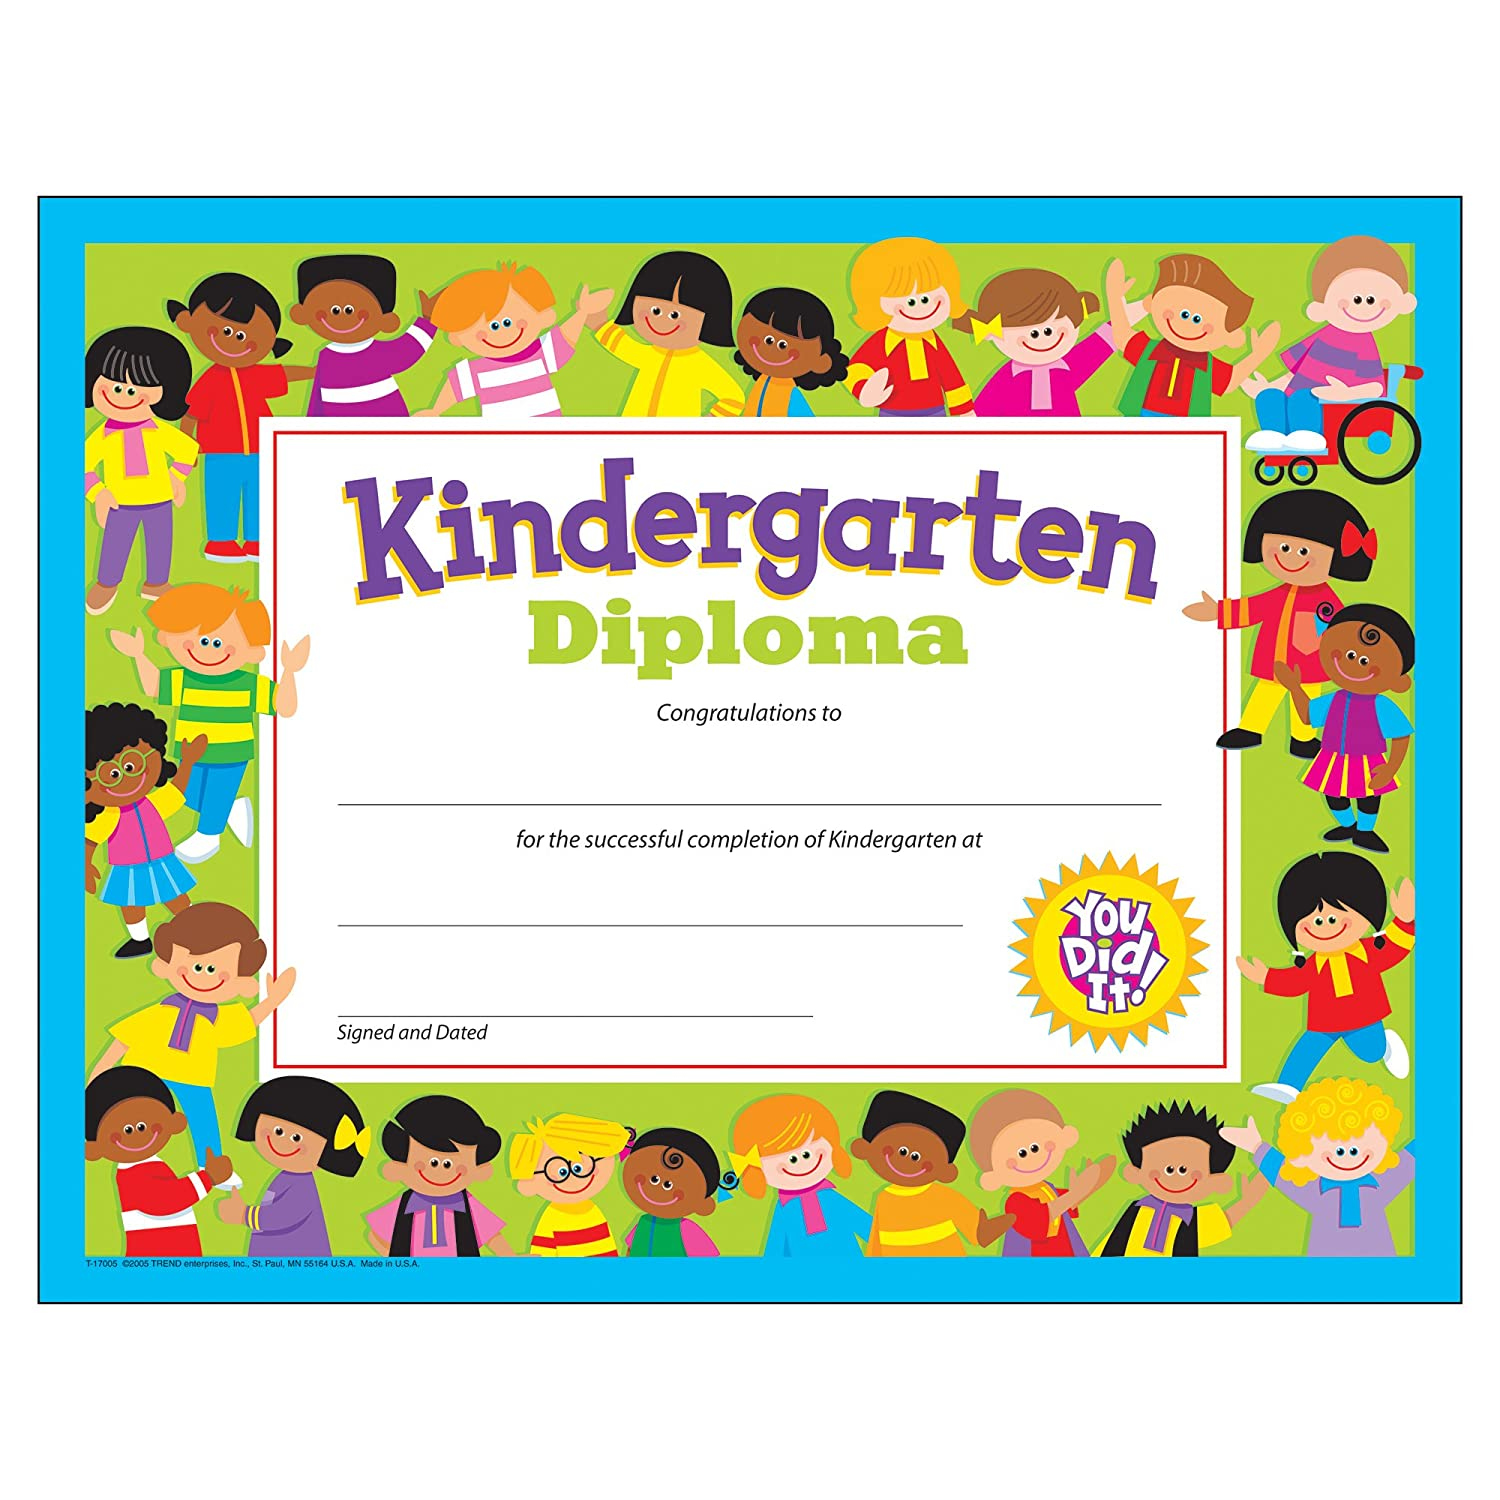 kindergarten graduation certificate  Amazon.com : Kindergarten Diploma : Blank Certificates : Office ...